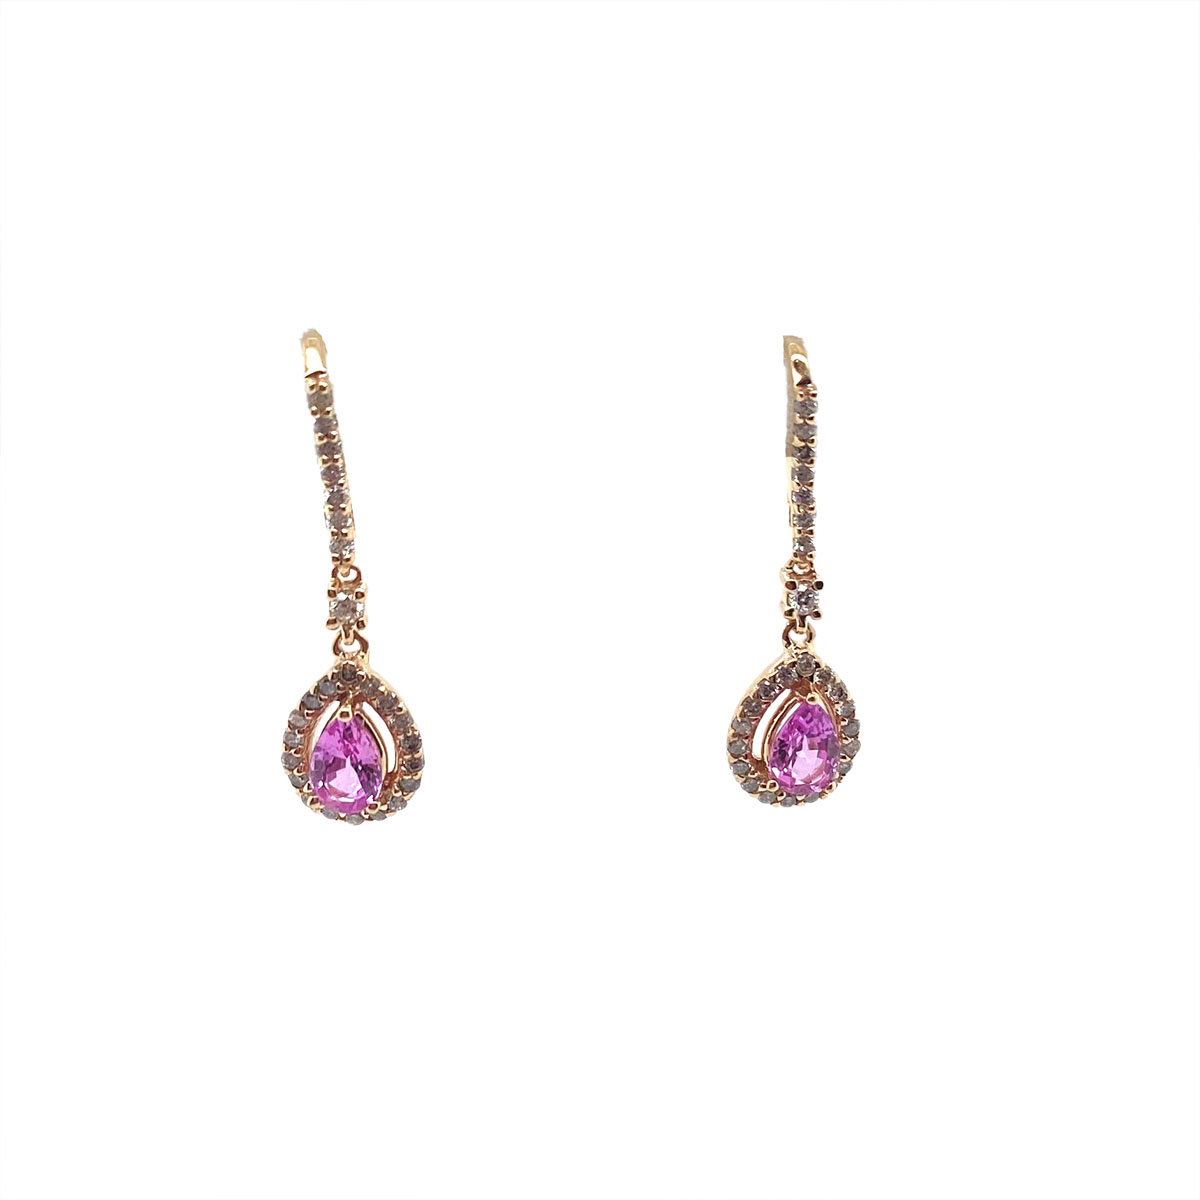 14 Karat Rose Gold Pear Shaped Pink Sapphire and Diamond Earrings